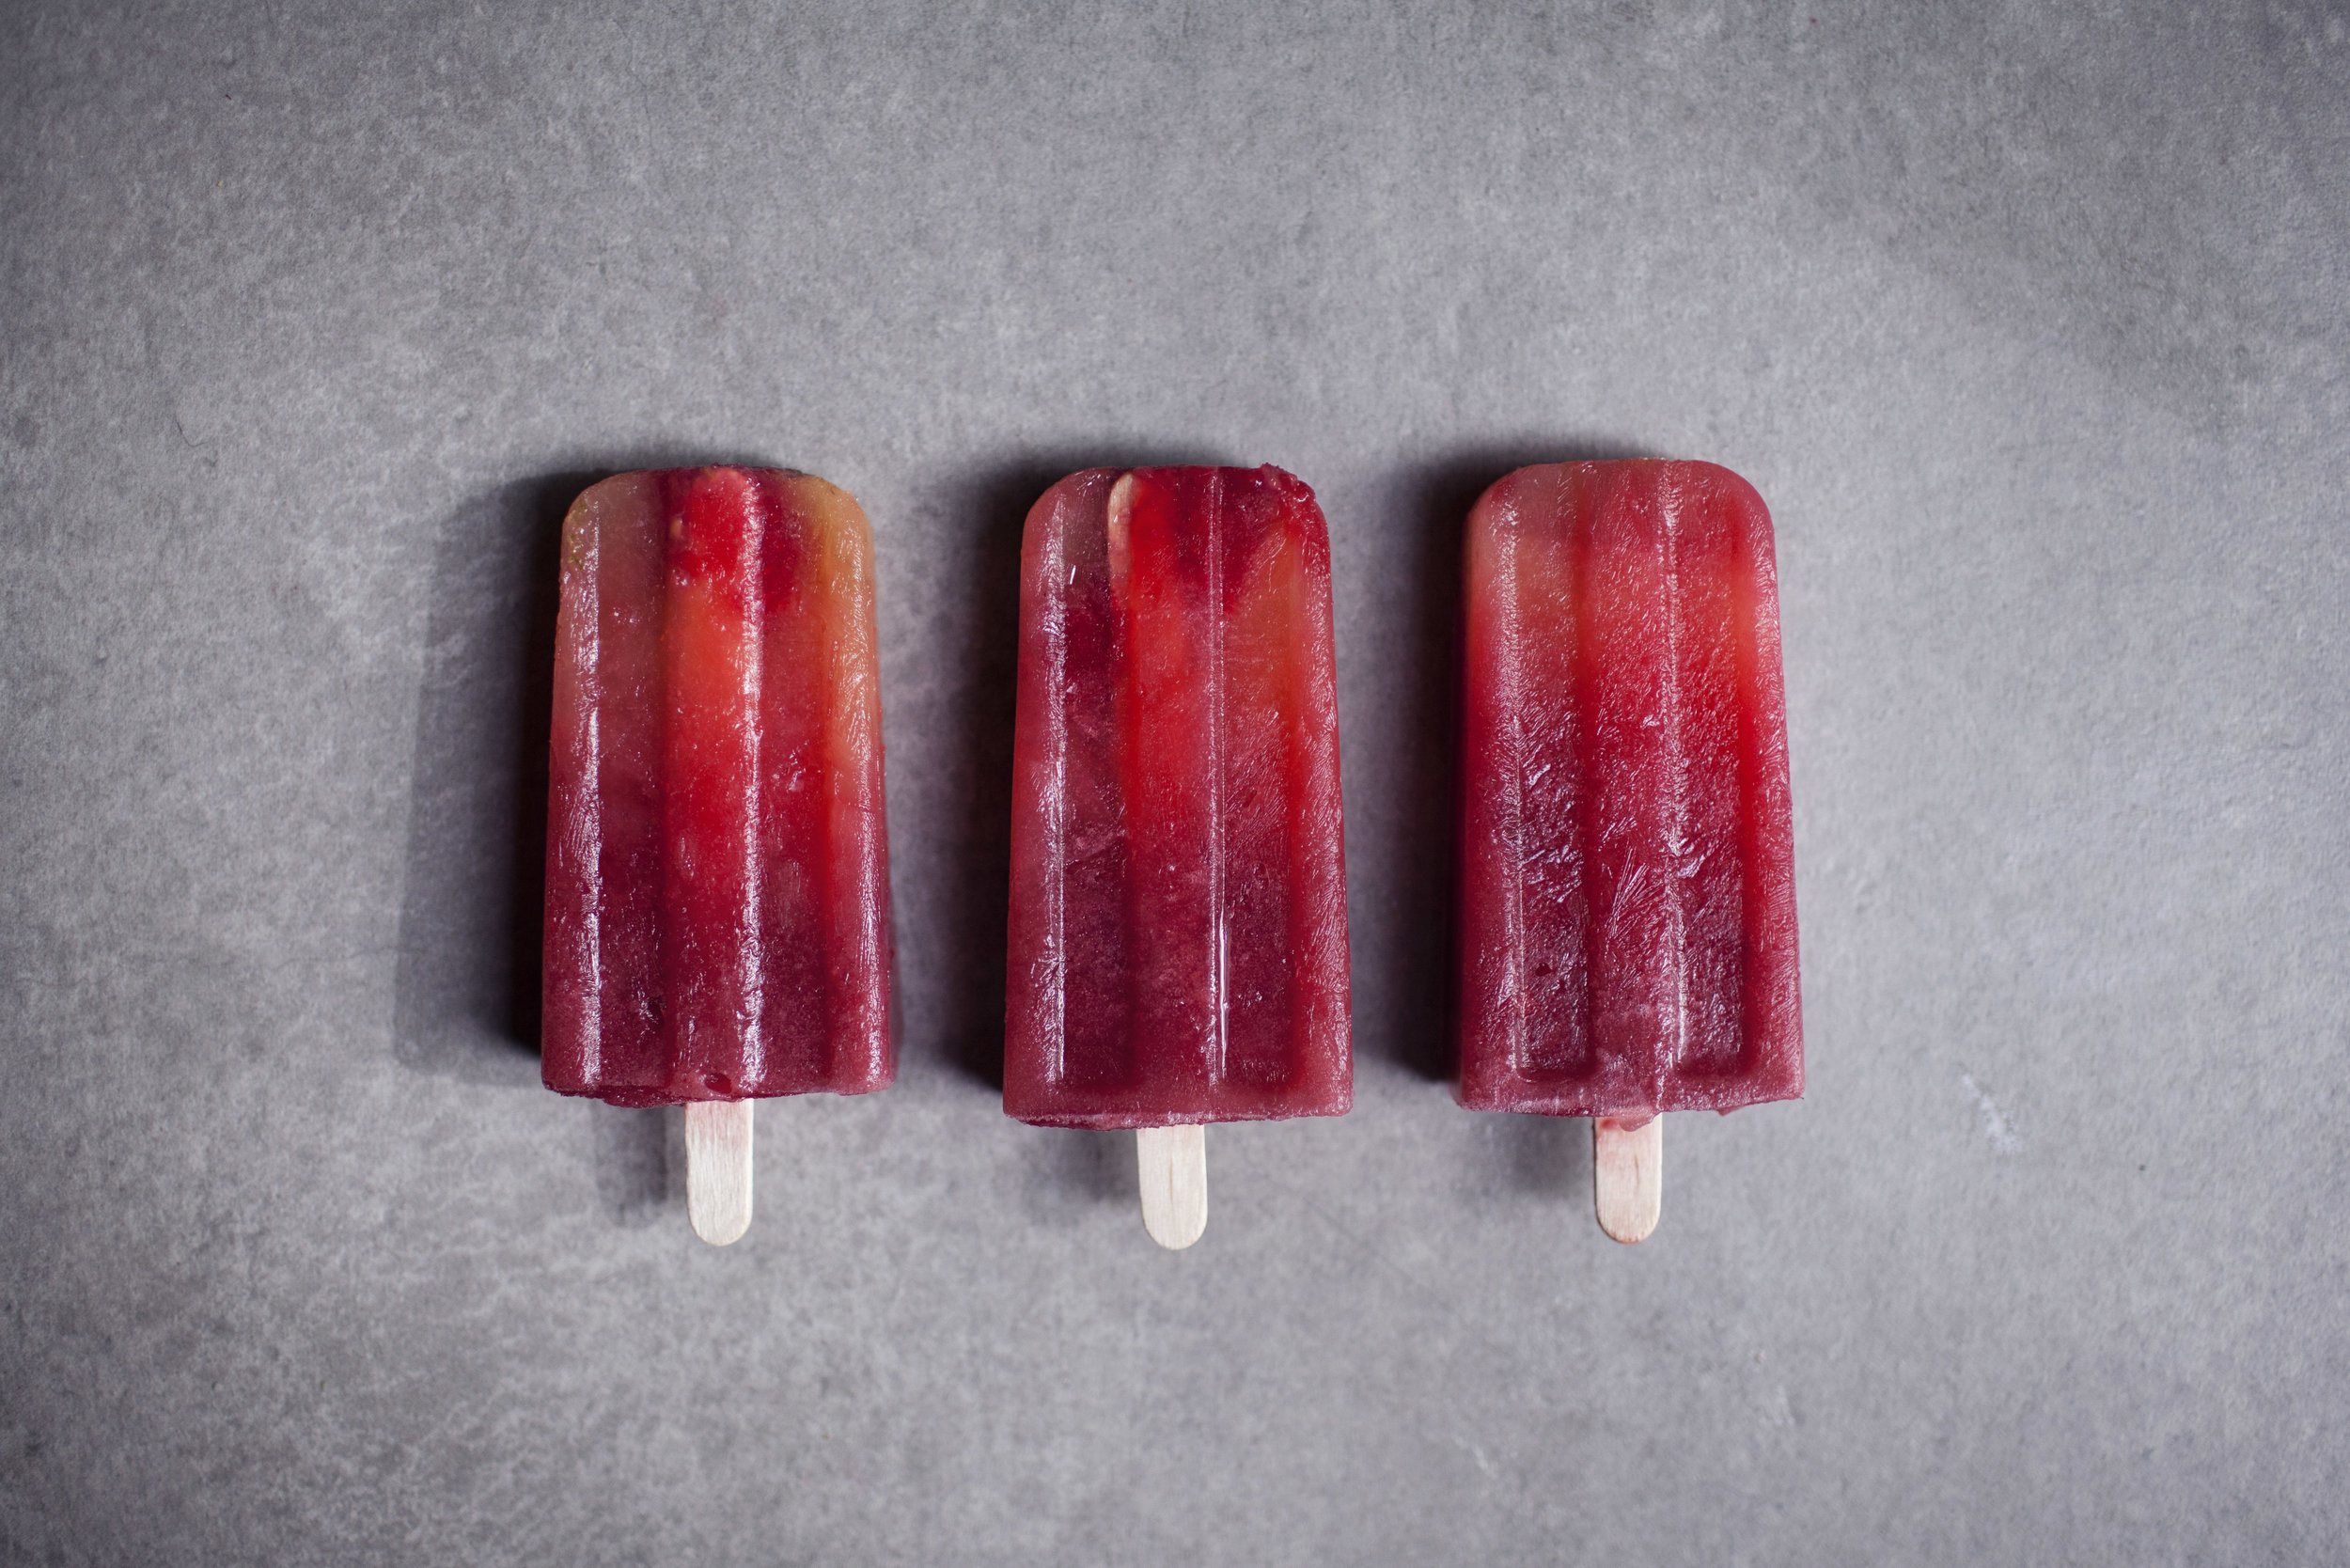 raspberry orange popsicles iii.jpg